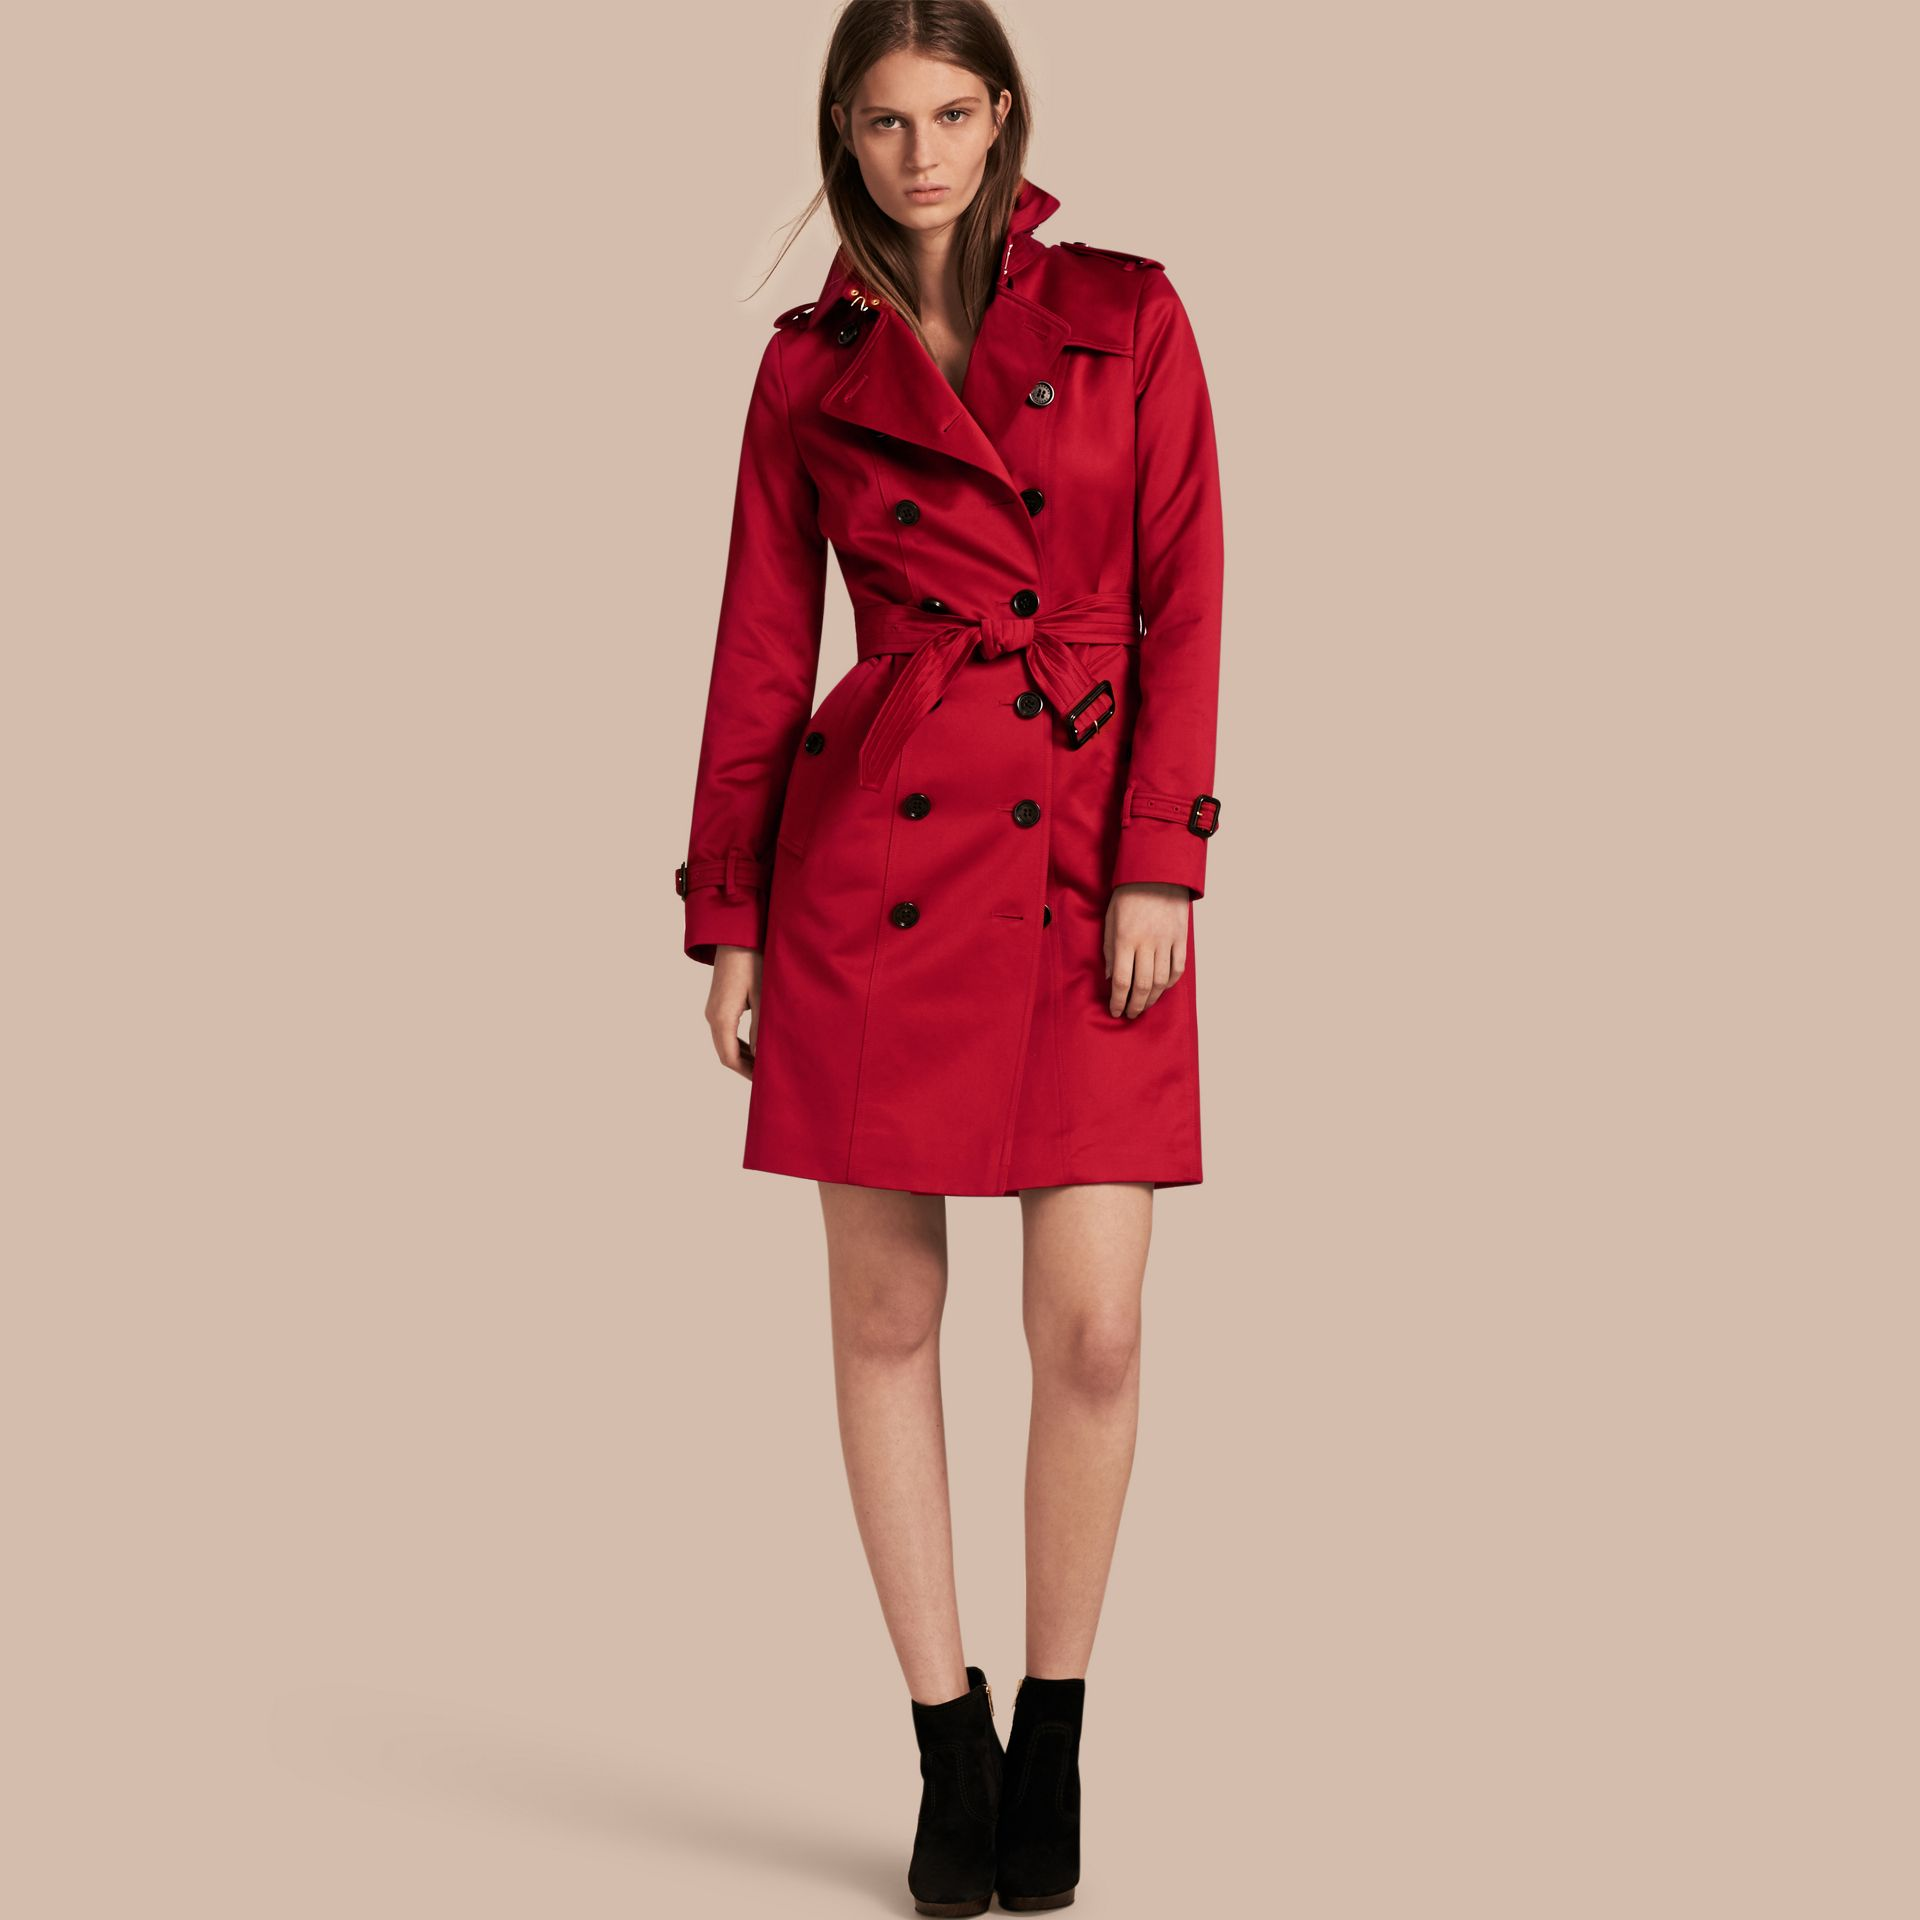 Rouge parade Trench-coat en satin de coton - photo de la galerie 1